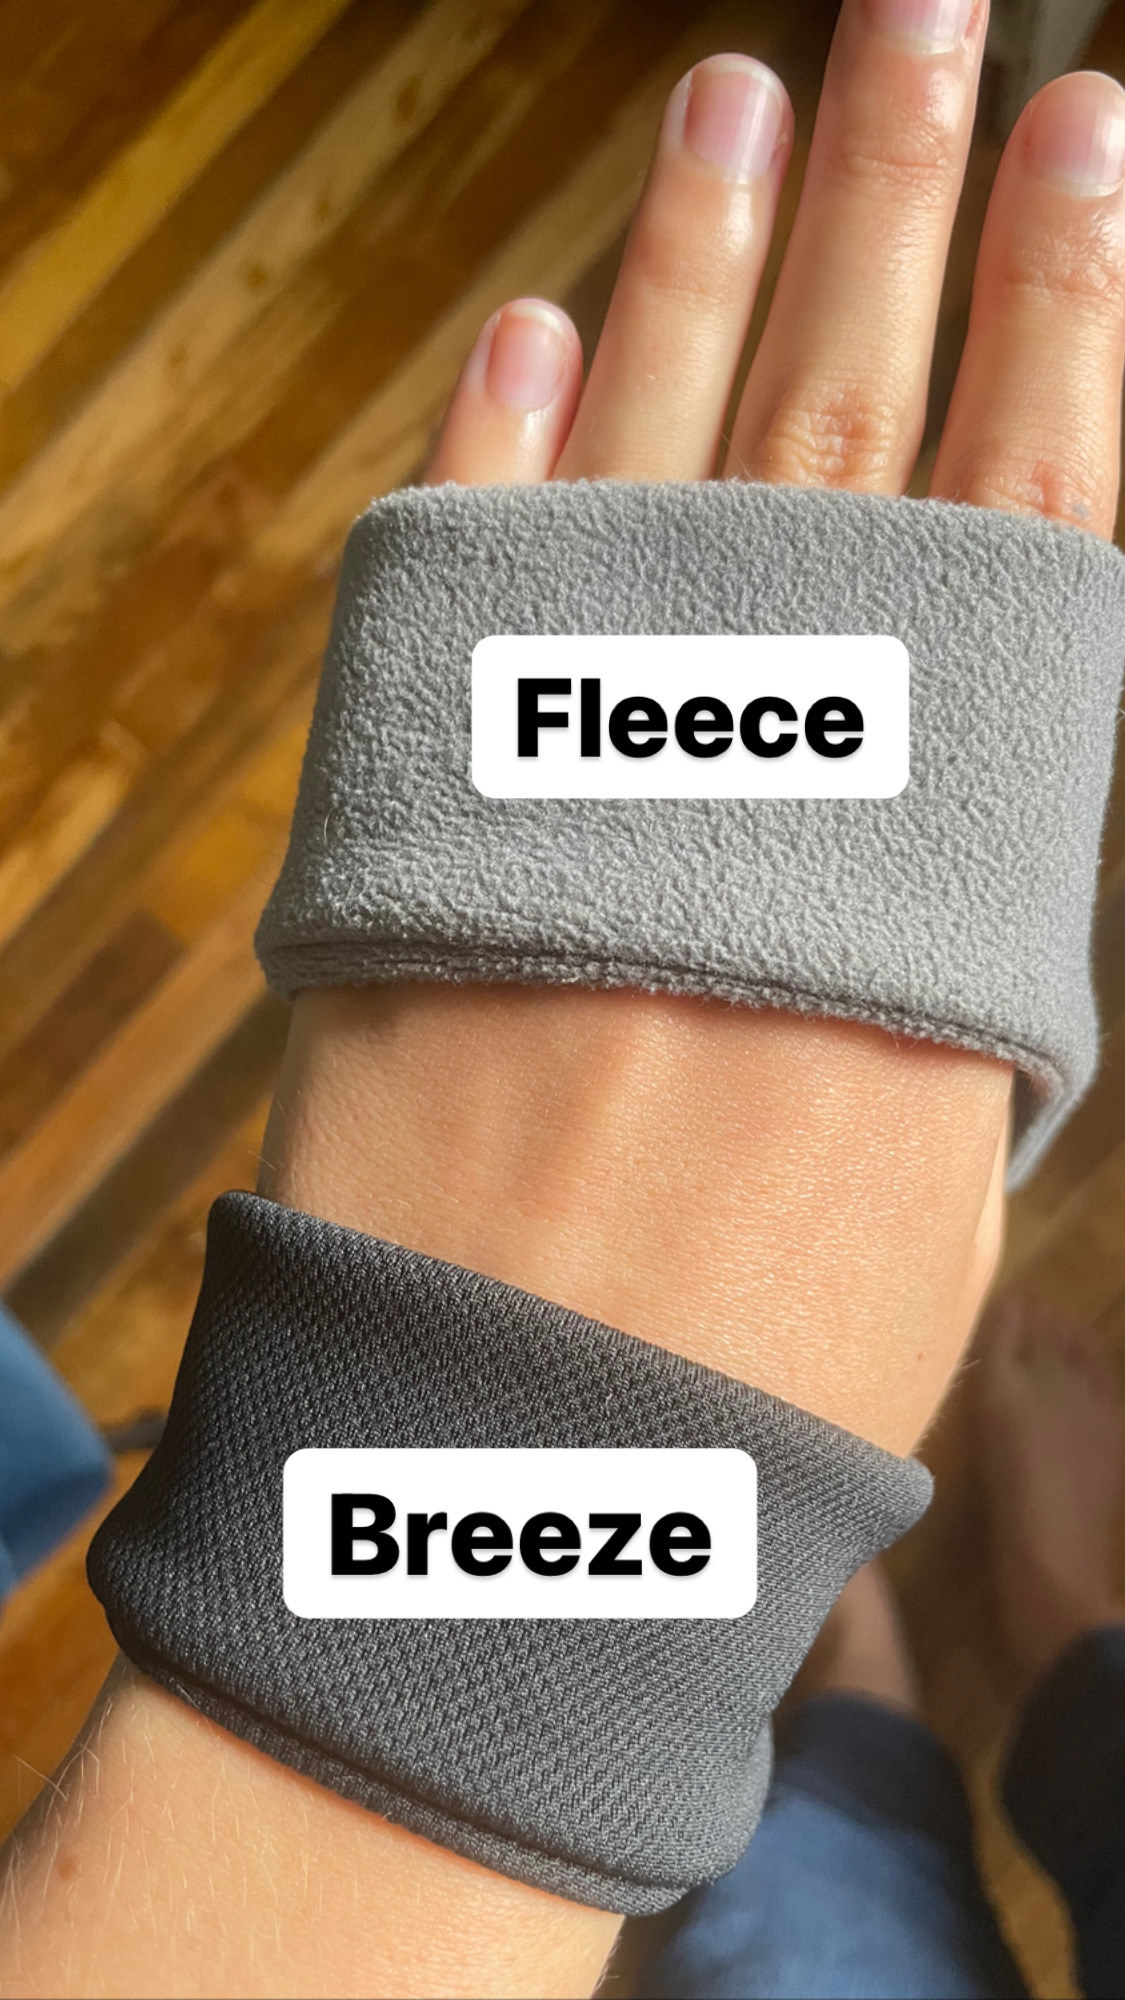 the writer with both headphones hanging from her wrist showing the fleece and breeze textures